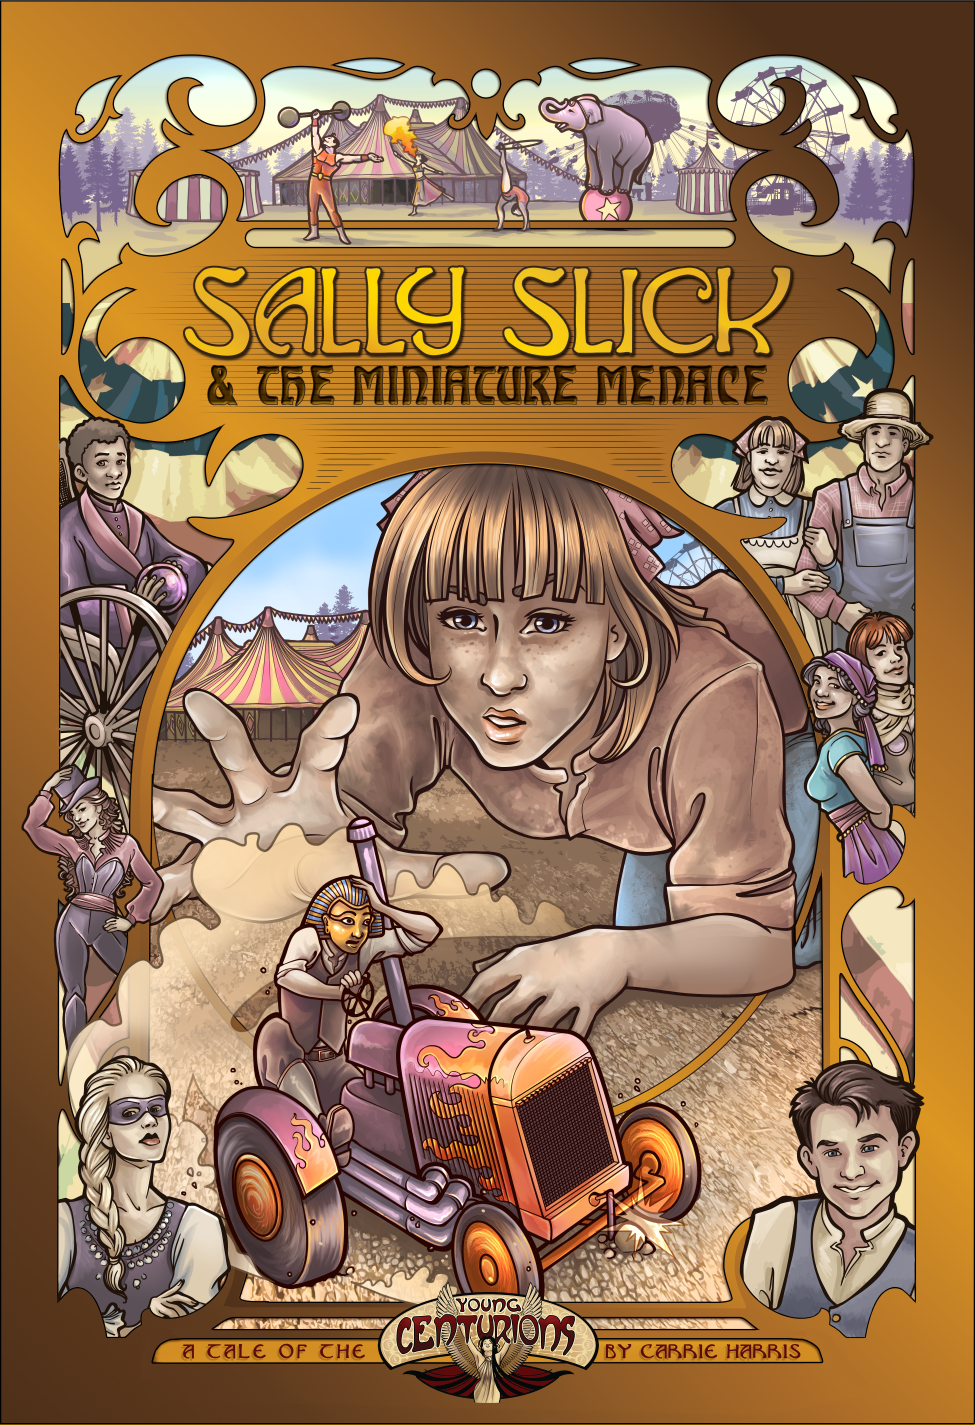 Capa de Resenha - Sally Slick and the Miniature Menace